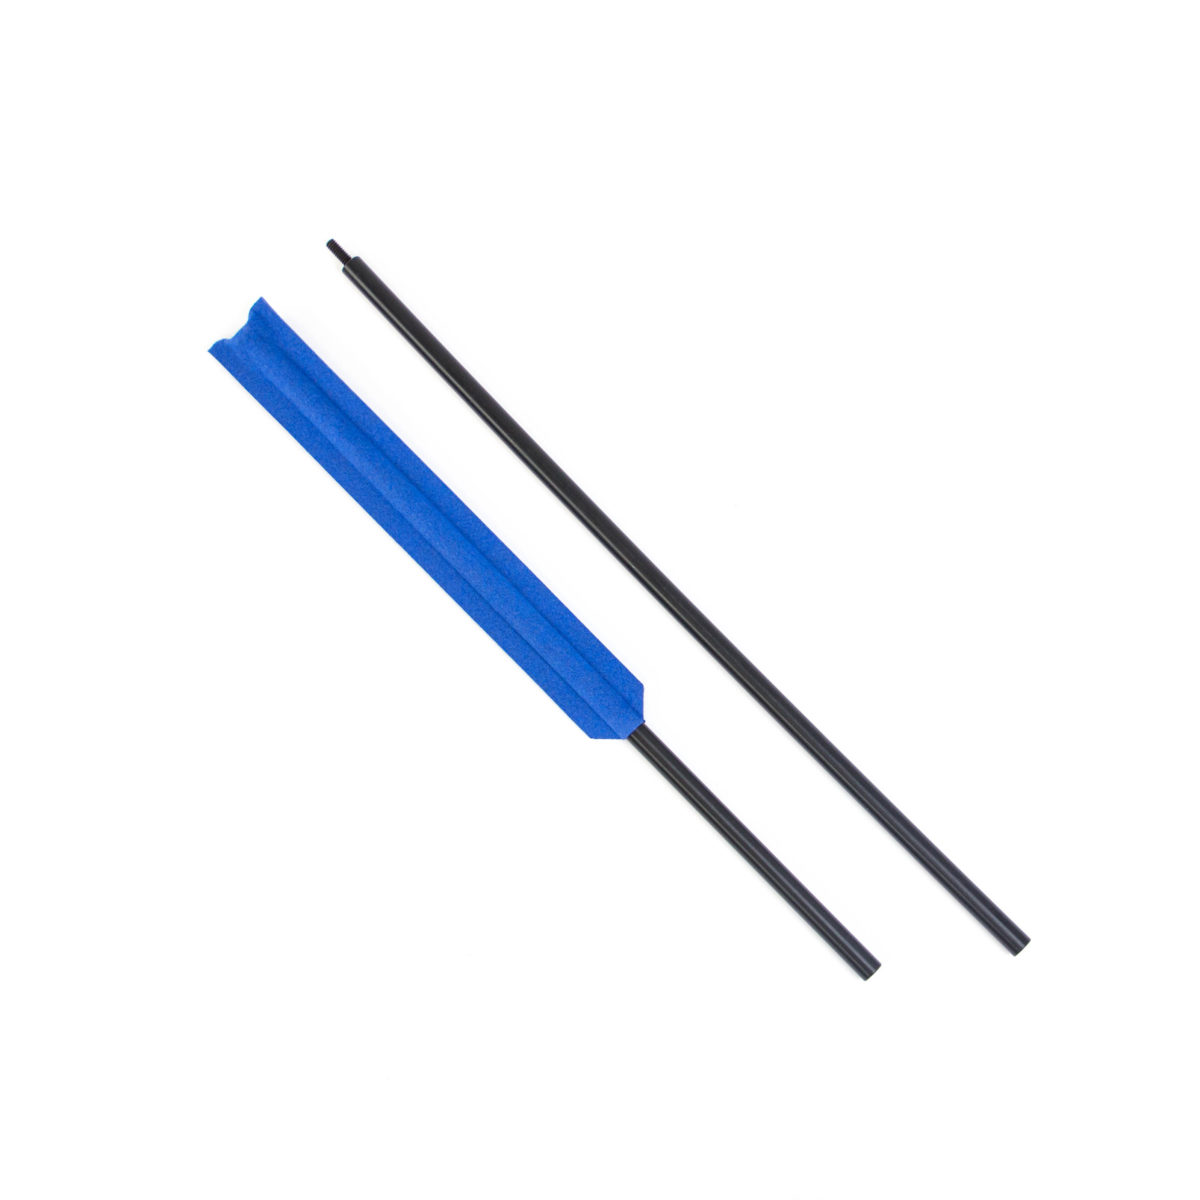 Flute Wand Extension 2